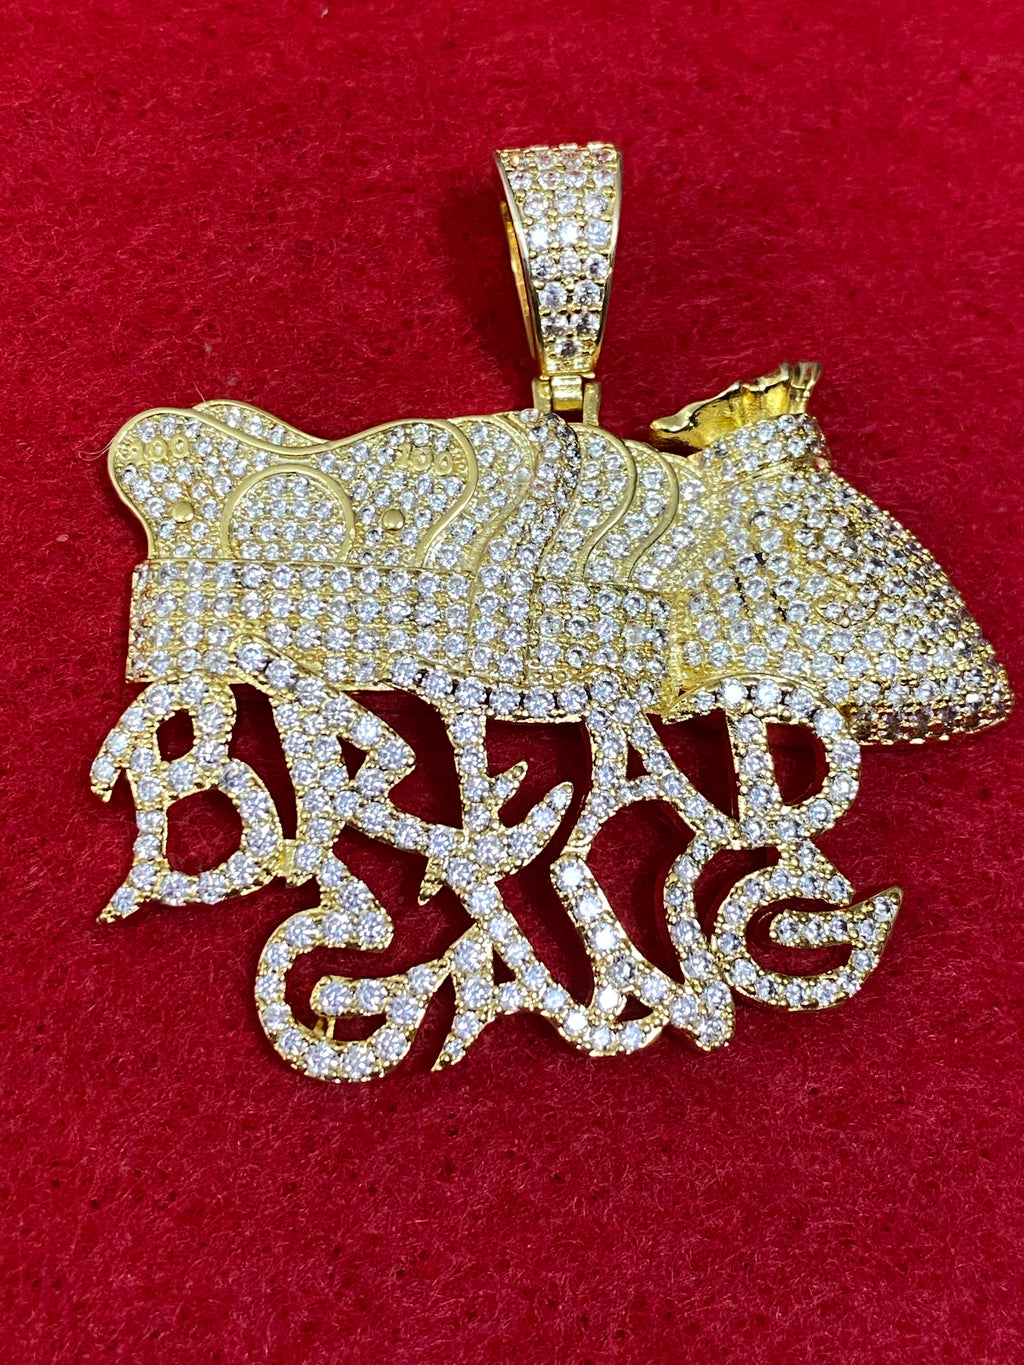 Pendant and chain bread gang